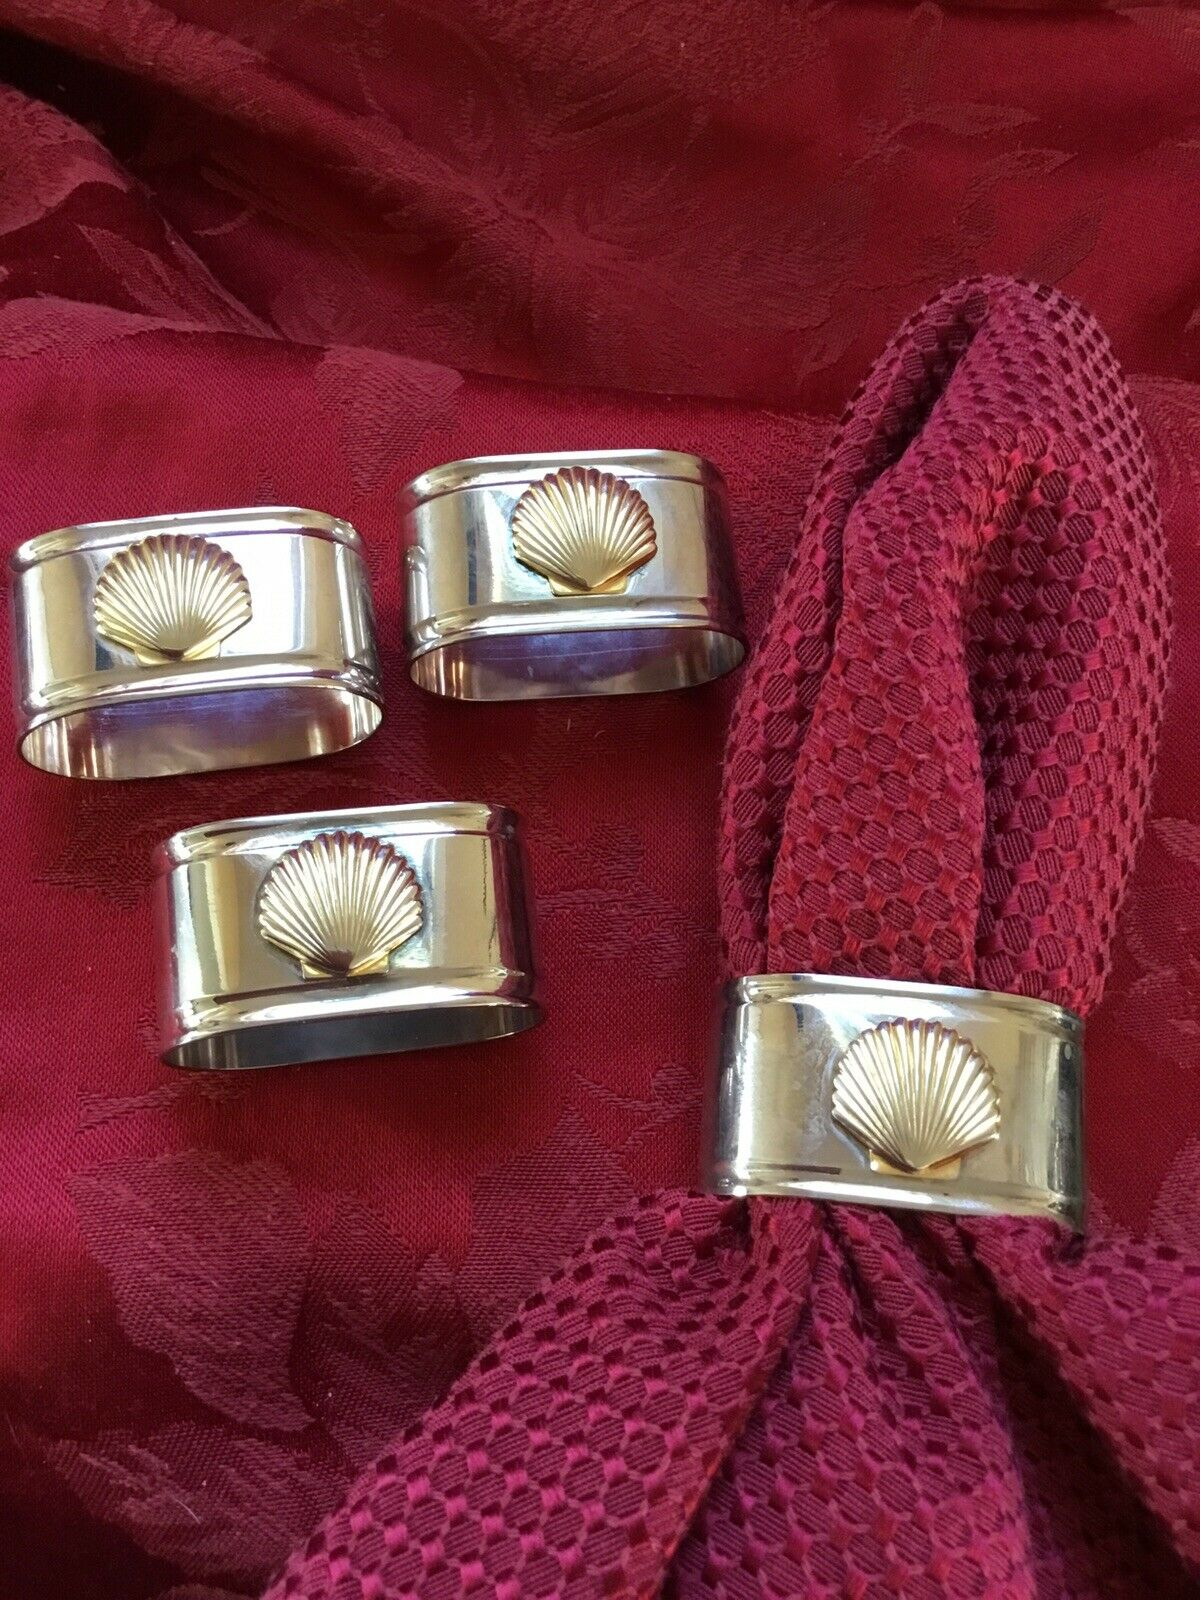 FLAWLESS Exquisite SHELL Set Of Four Oval Silber & Gold NAPKIN RINGS